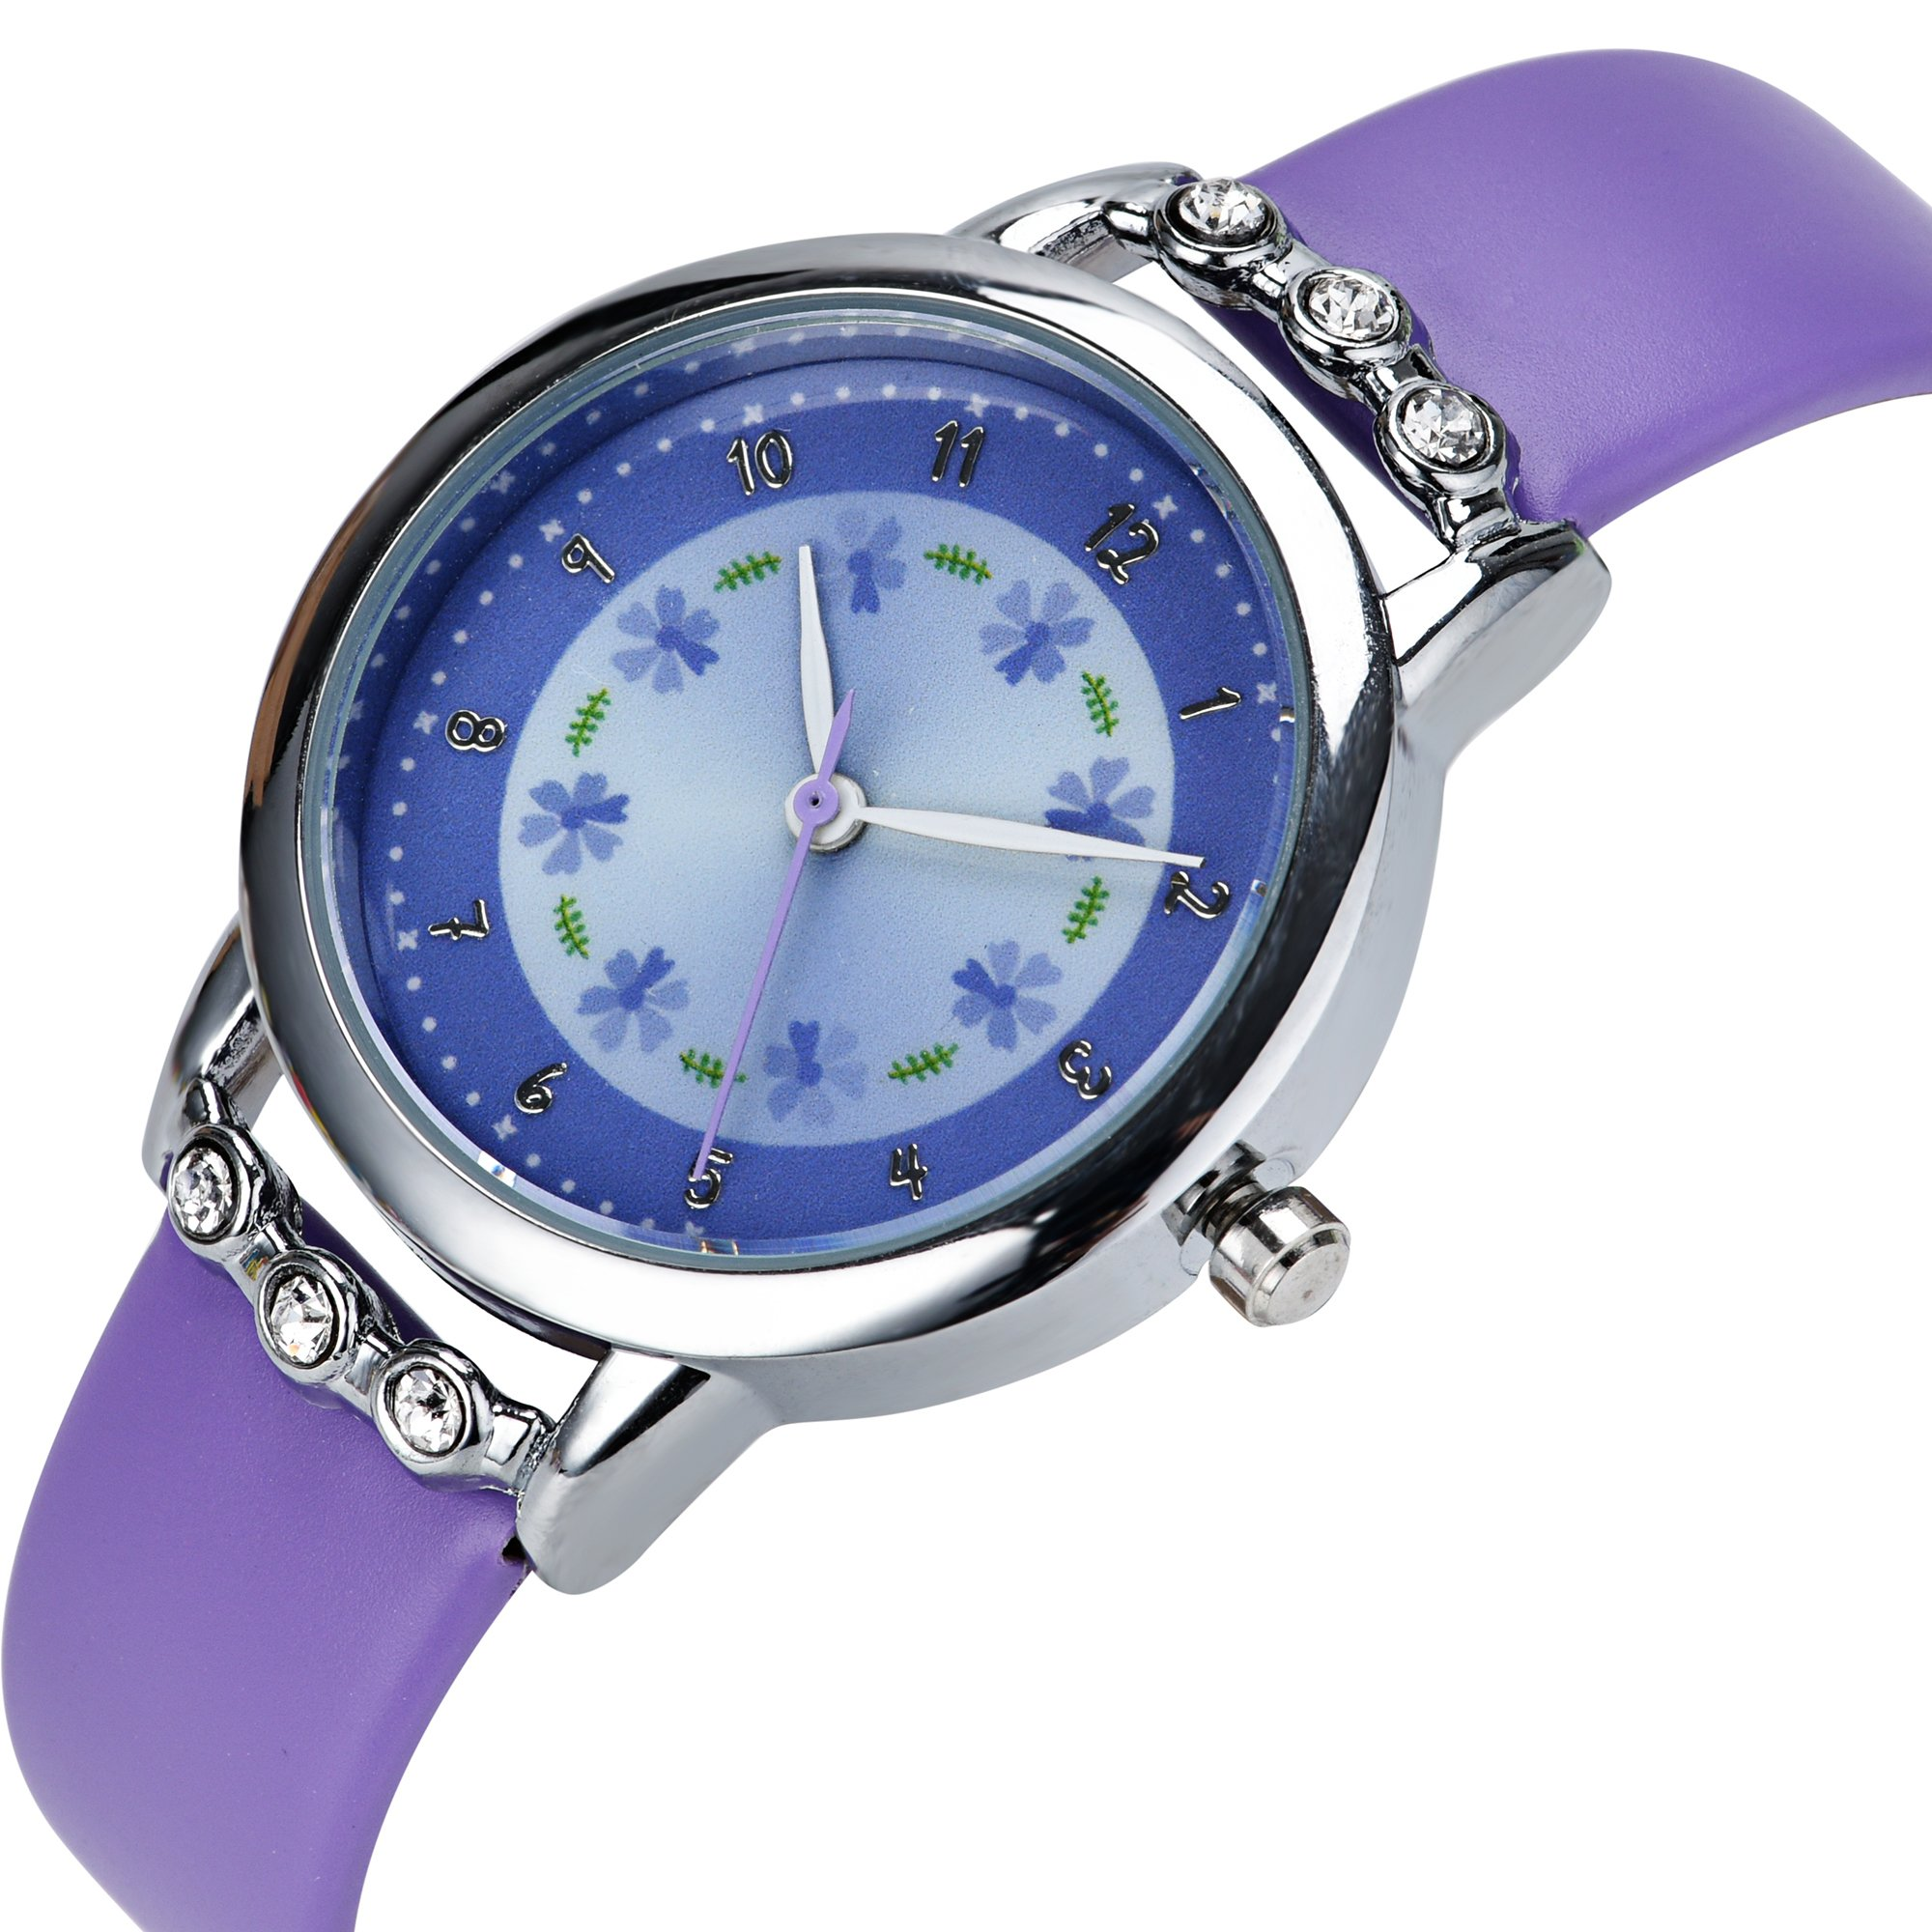 Dovoda girl watches easy reader time teacher flowers diamond purple leather band kids watch amazon for Dovoda watches